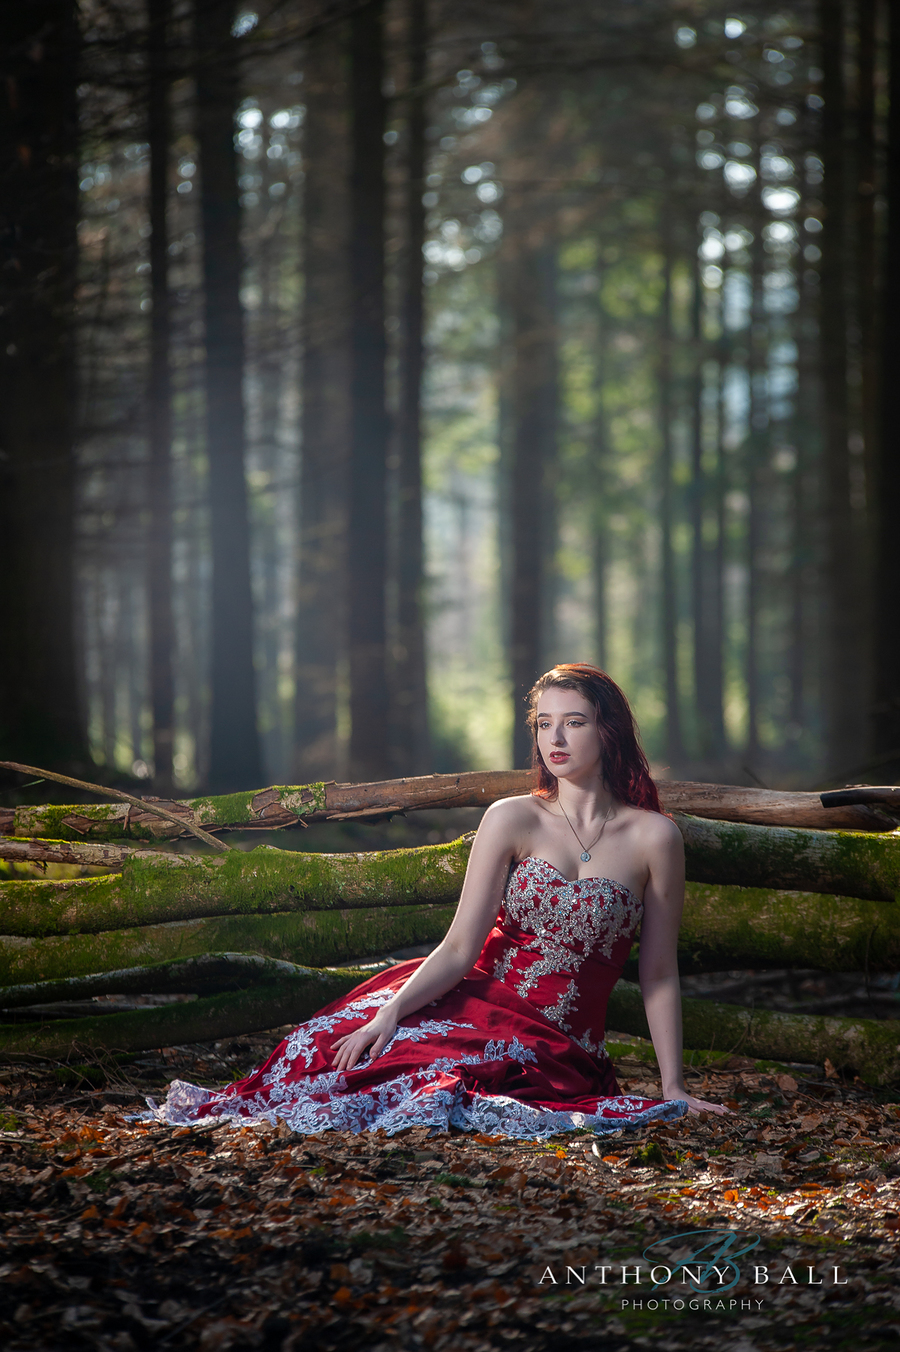 Forest Contemplation / Photography by Anthony Ball Photography, Model Claudia Sampford, Makeup by Claudia Sampford, Taken at Anthony Ball Photography / Uploaded 1st March 2019 @ 11:15 AM